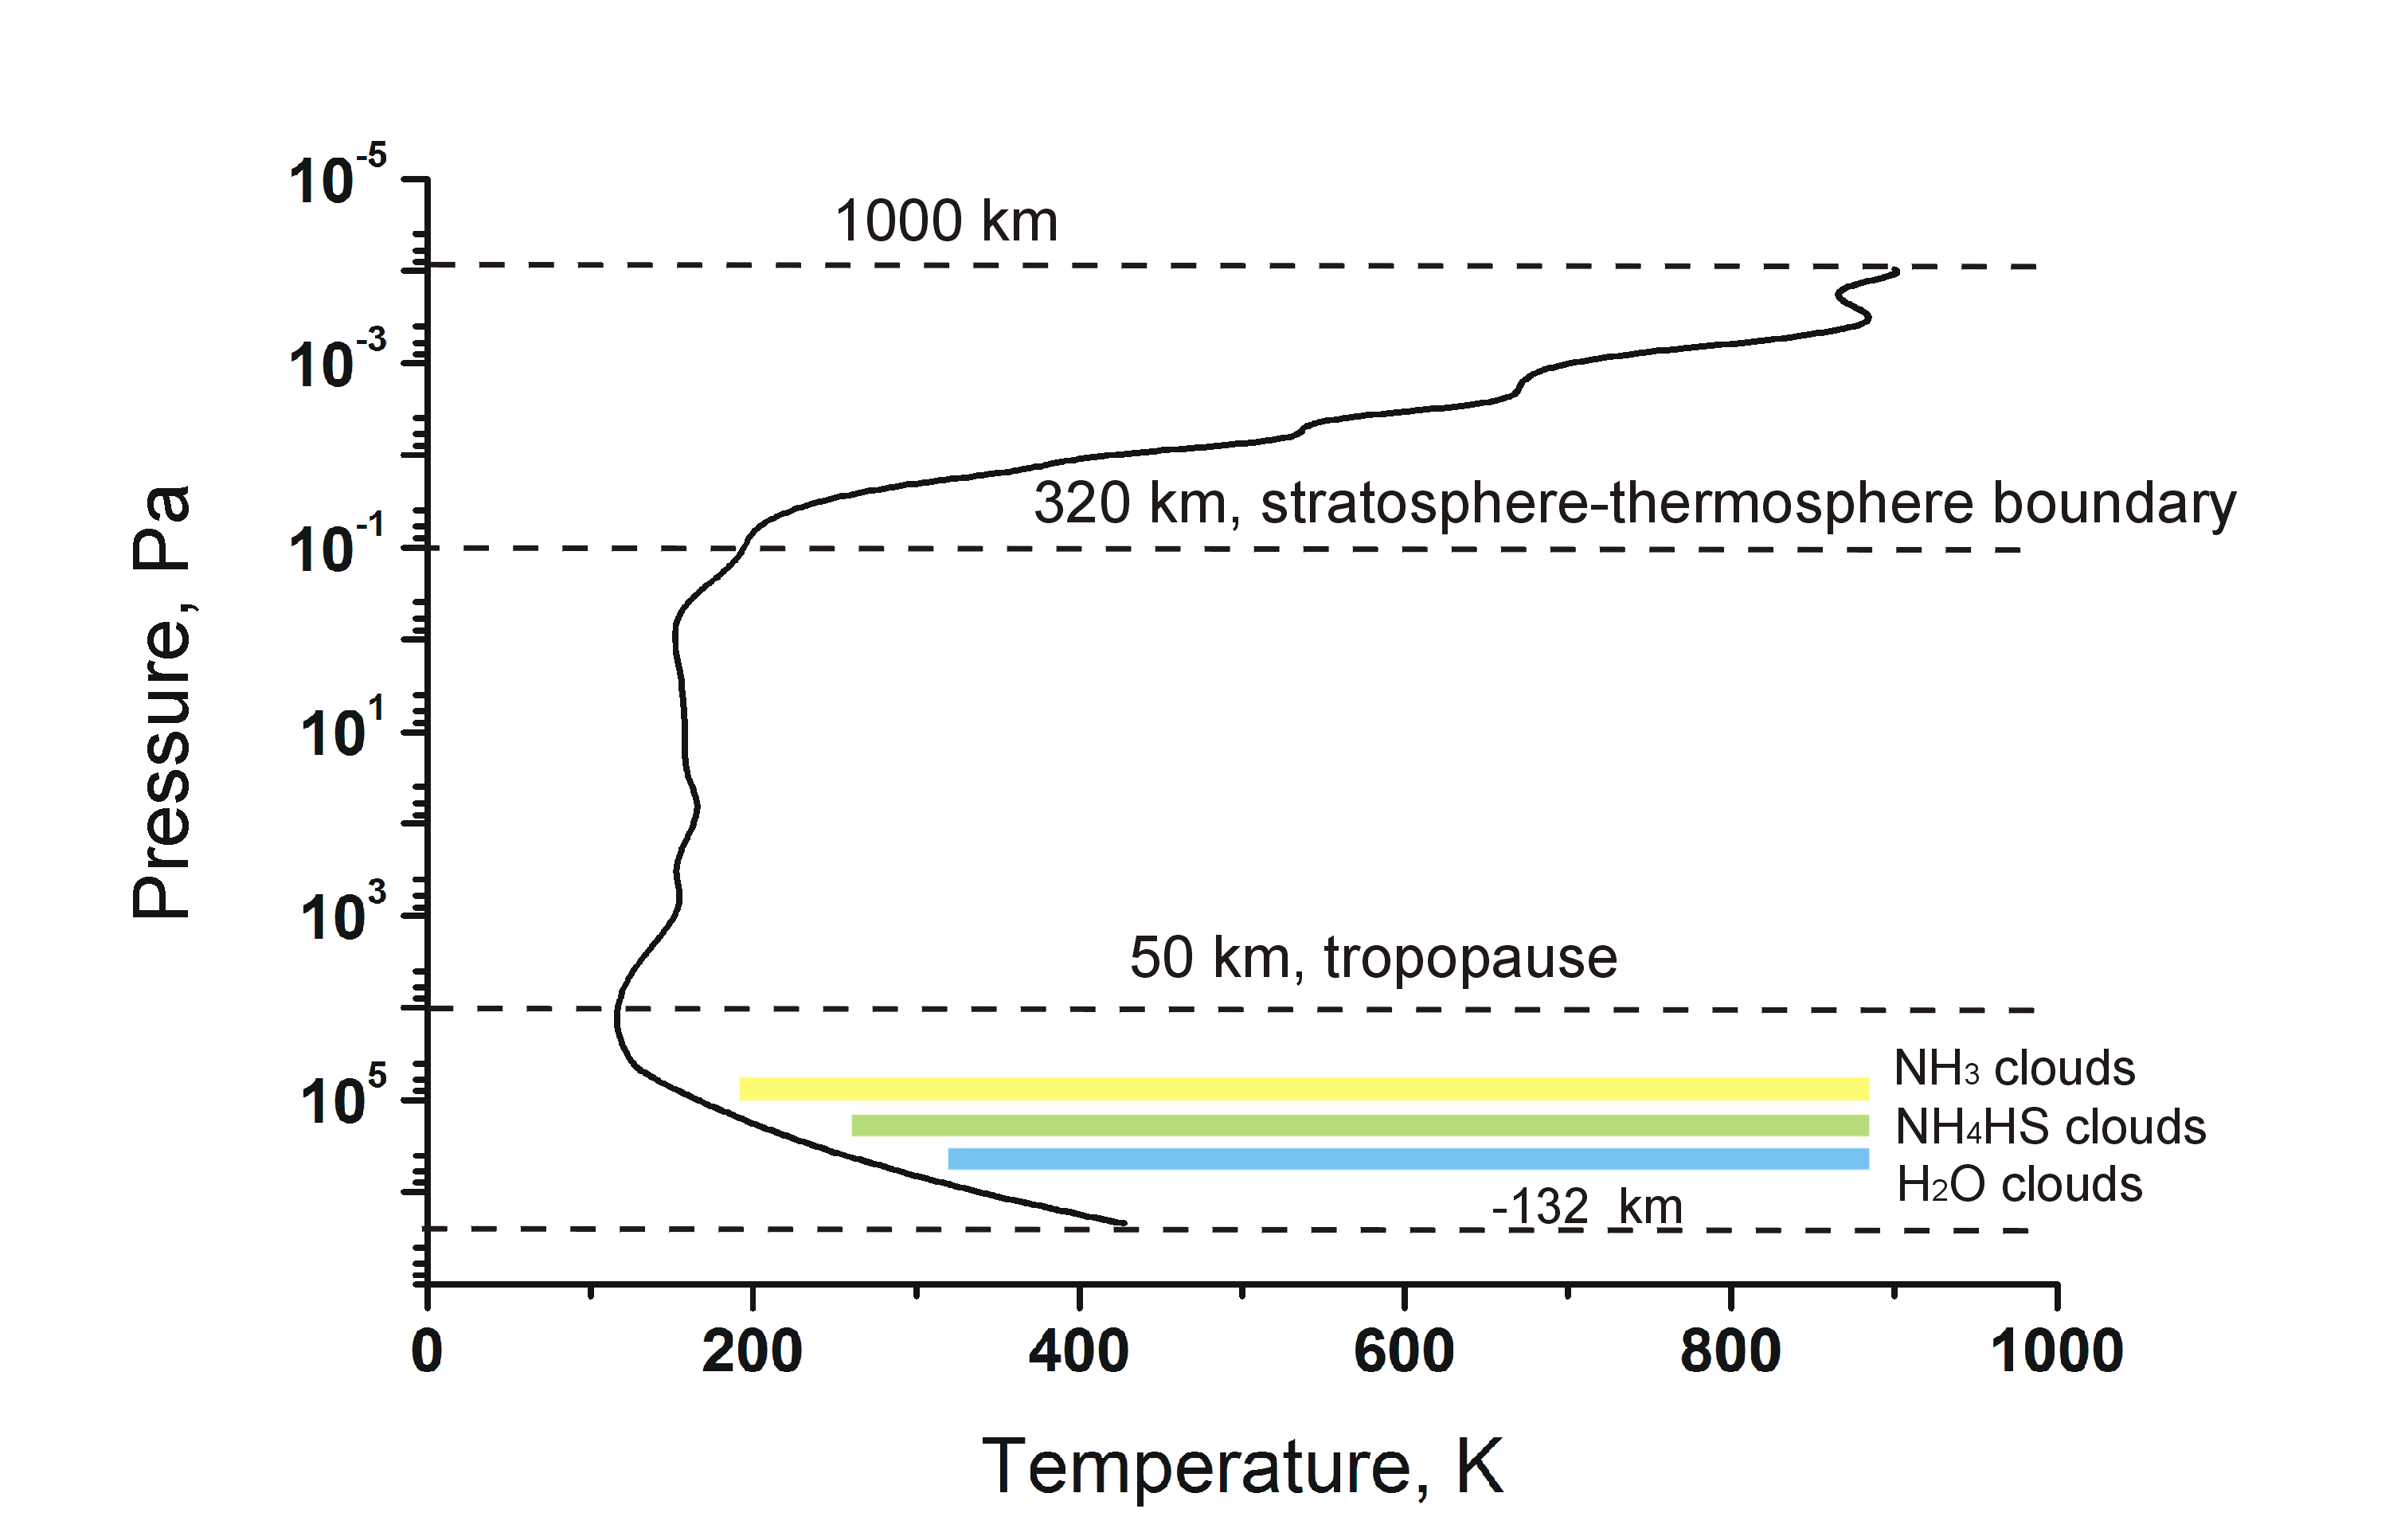 Structure_of_Jovian_atmosphere.png